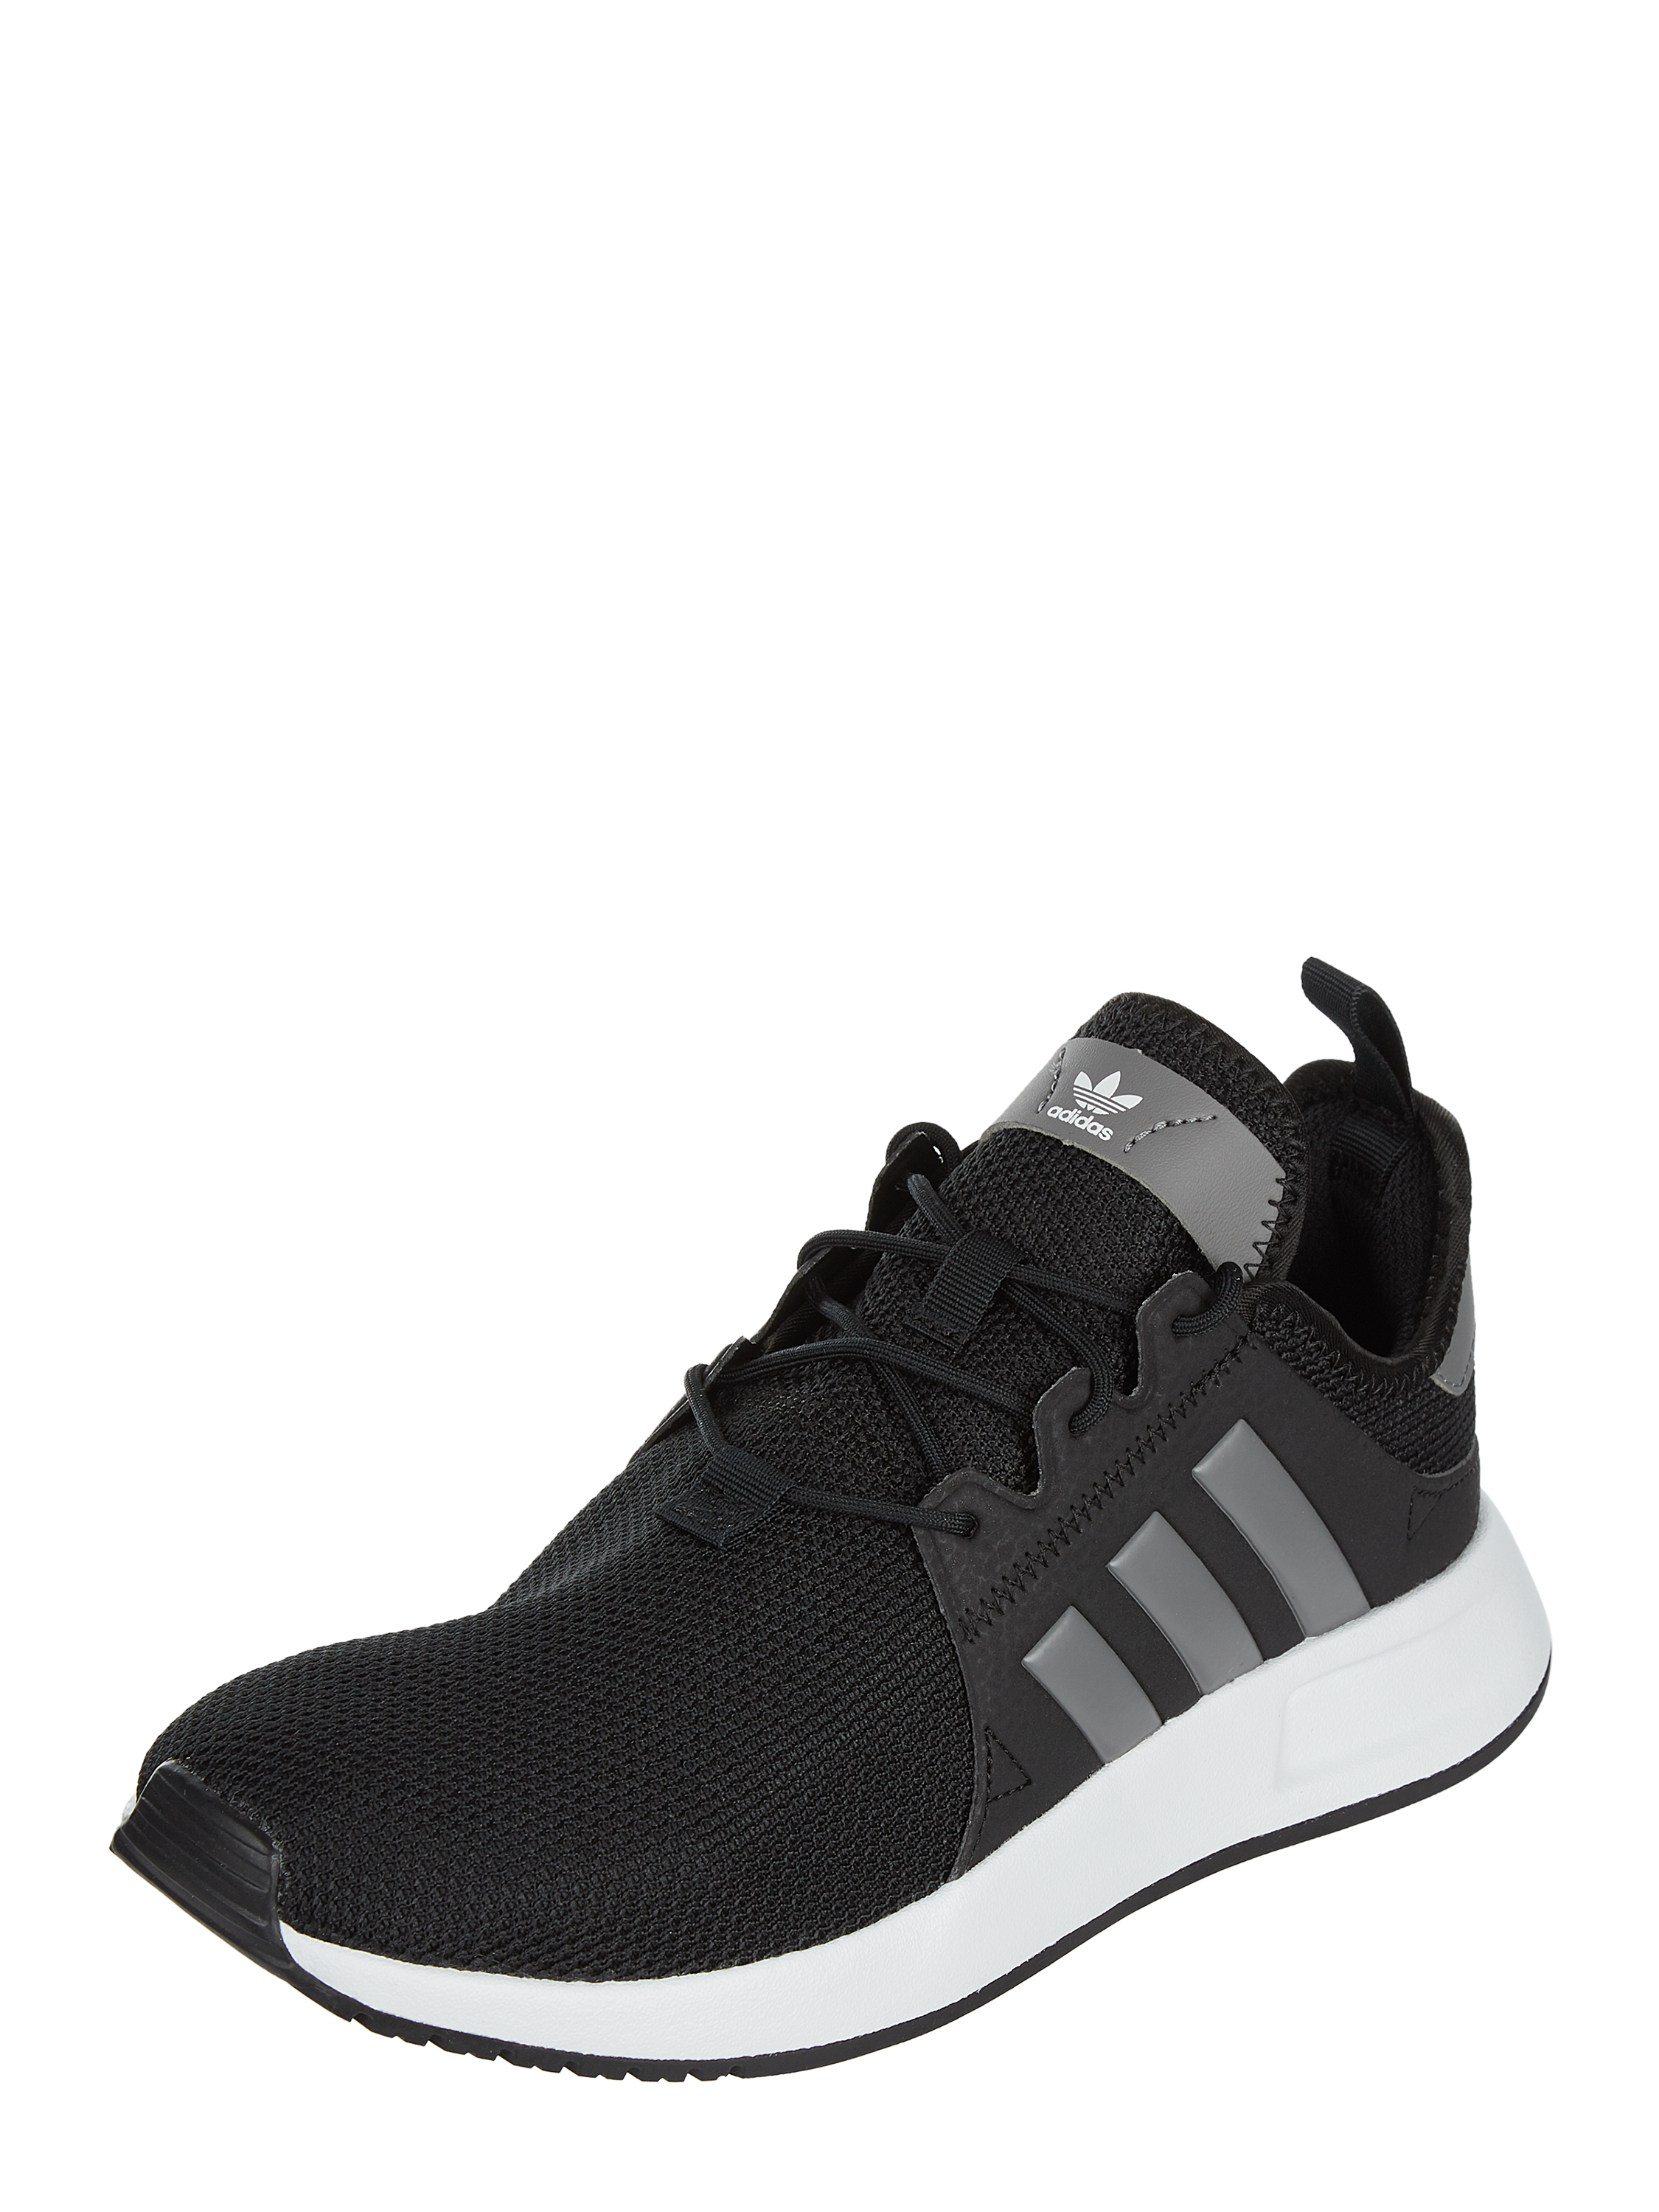 Black And White Adidas Shoes For Women PNG Rainbow Black